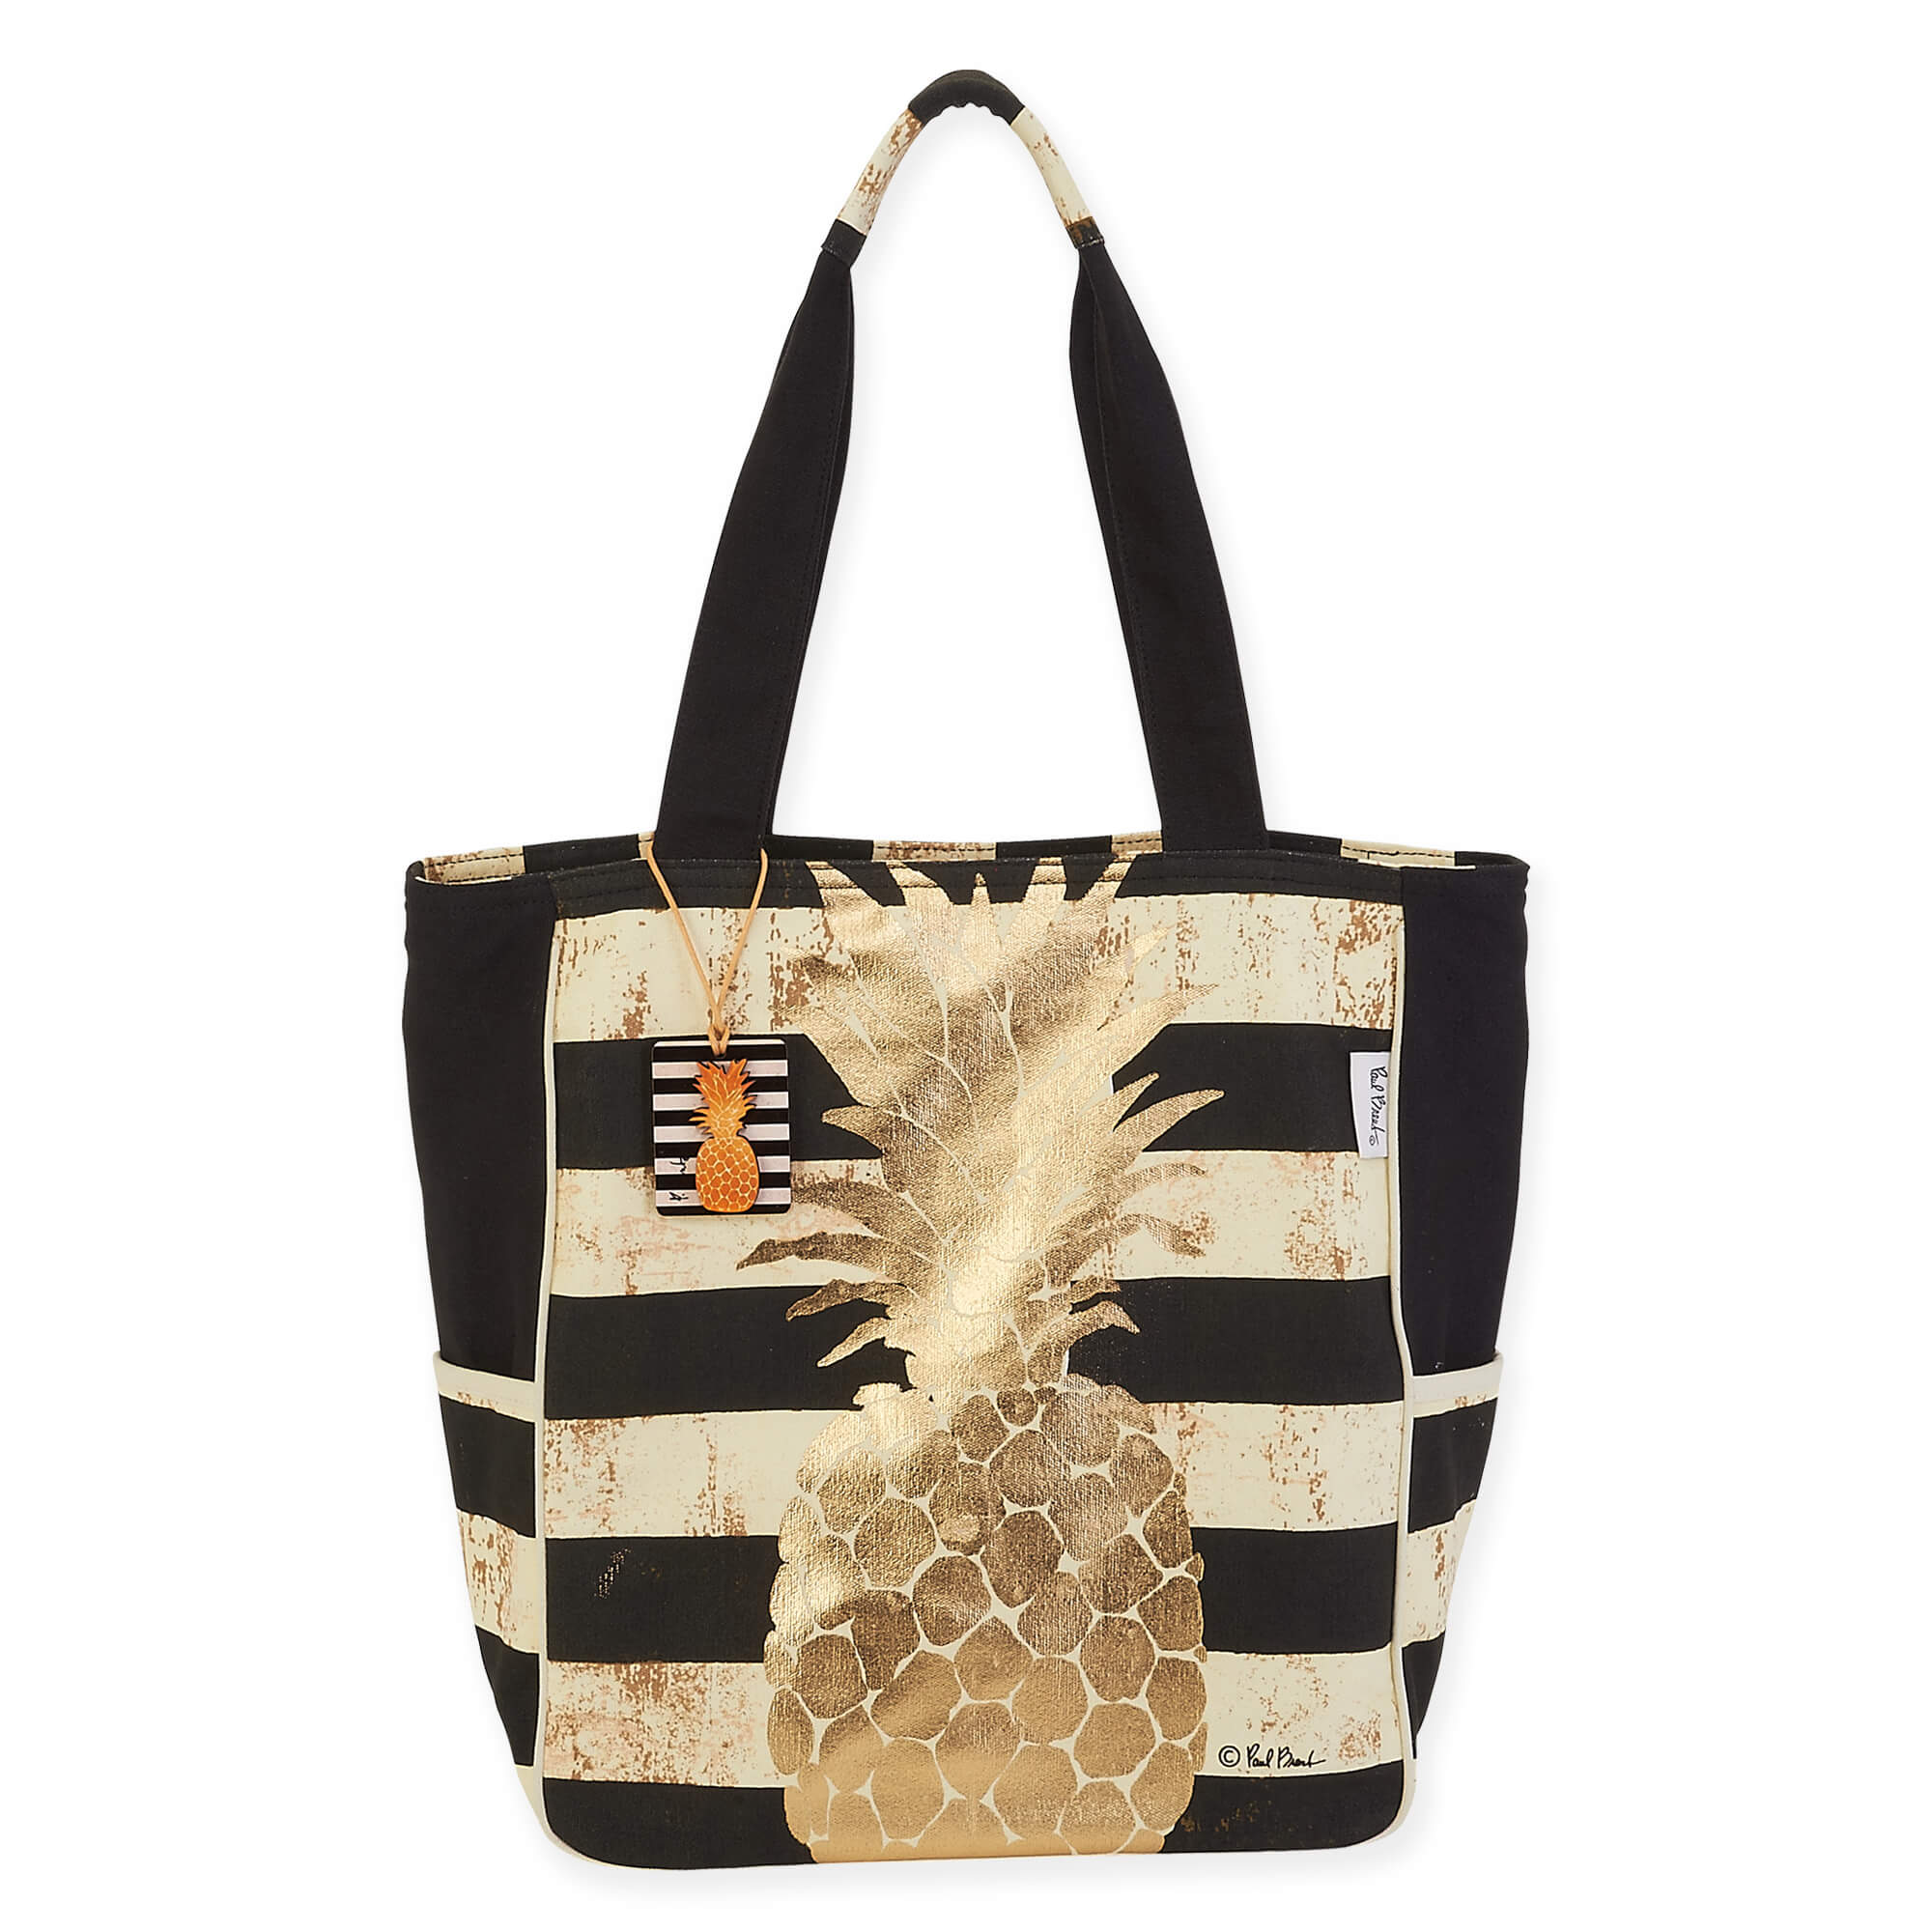 Pineapple Gold Coast N/S Shoulder Tote by Paul Brent - Pineapple